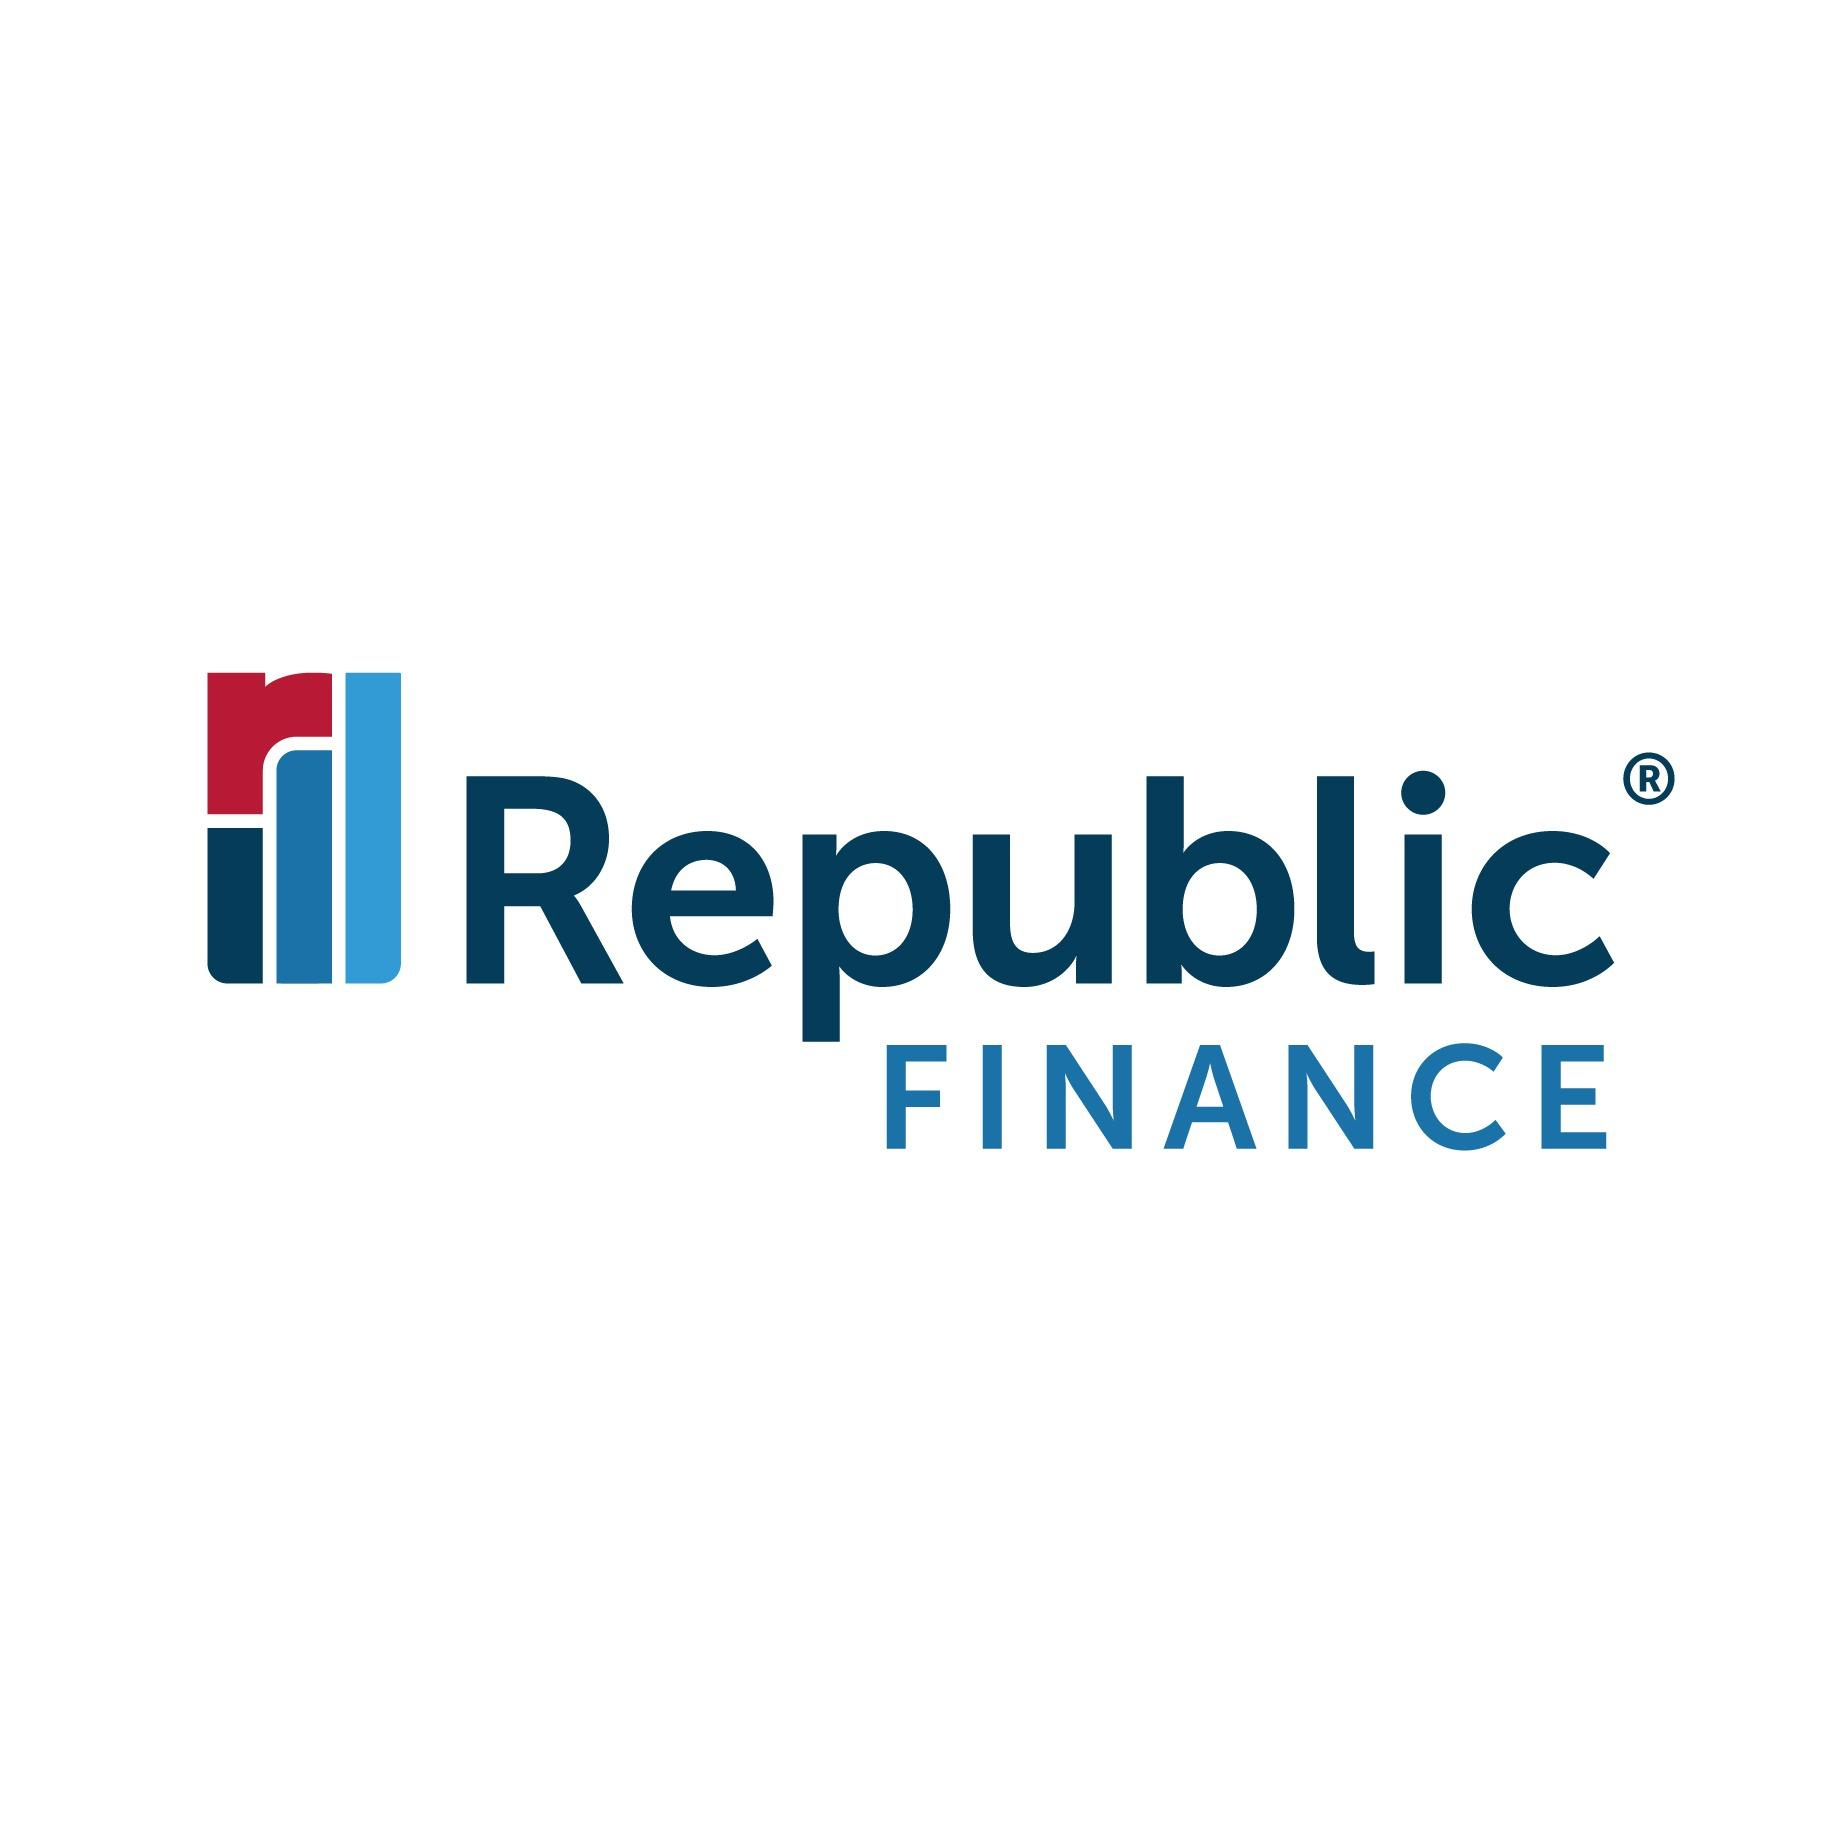 Republic Finance - Wildwood, MO 63011 - (636)733-6551 | ShowMeLocal.com